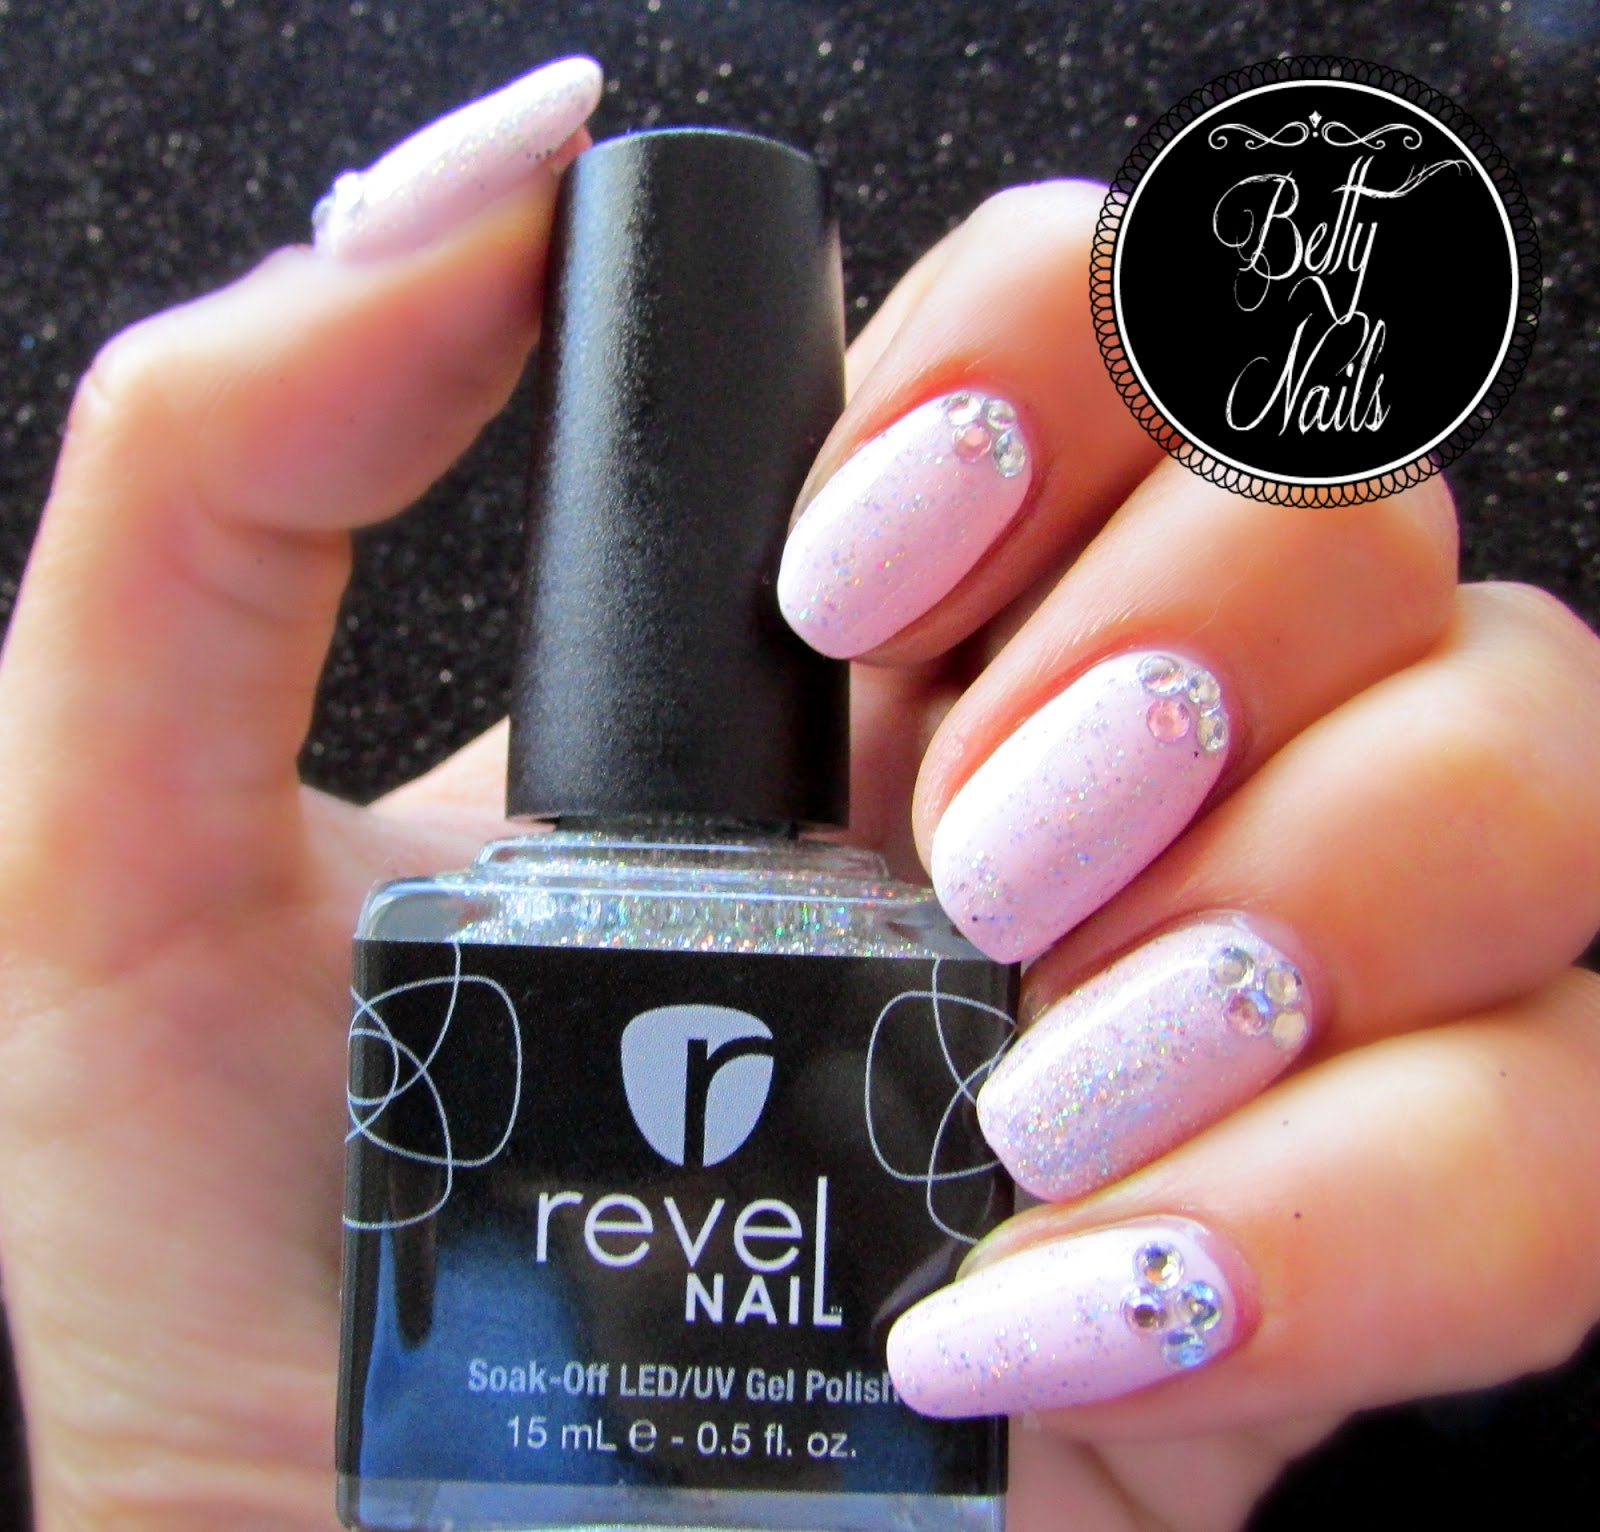 Revel Nail Bolgs: How to Remove Acrylic Nails